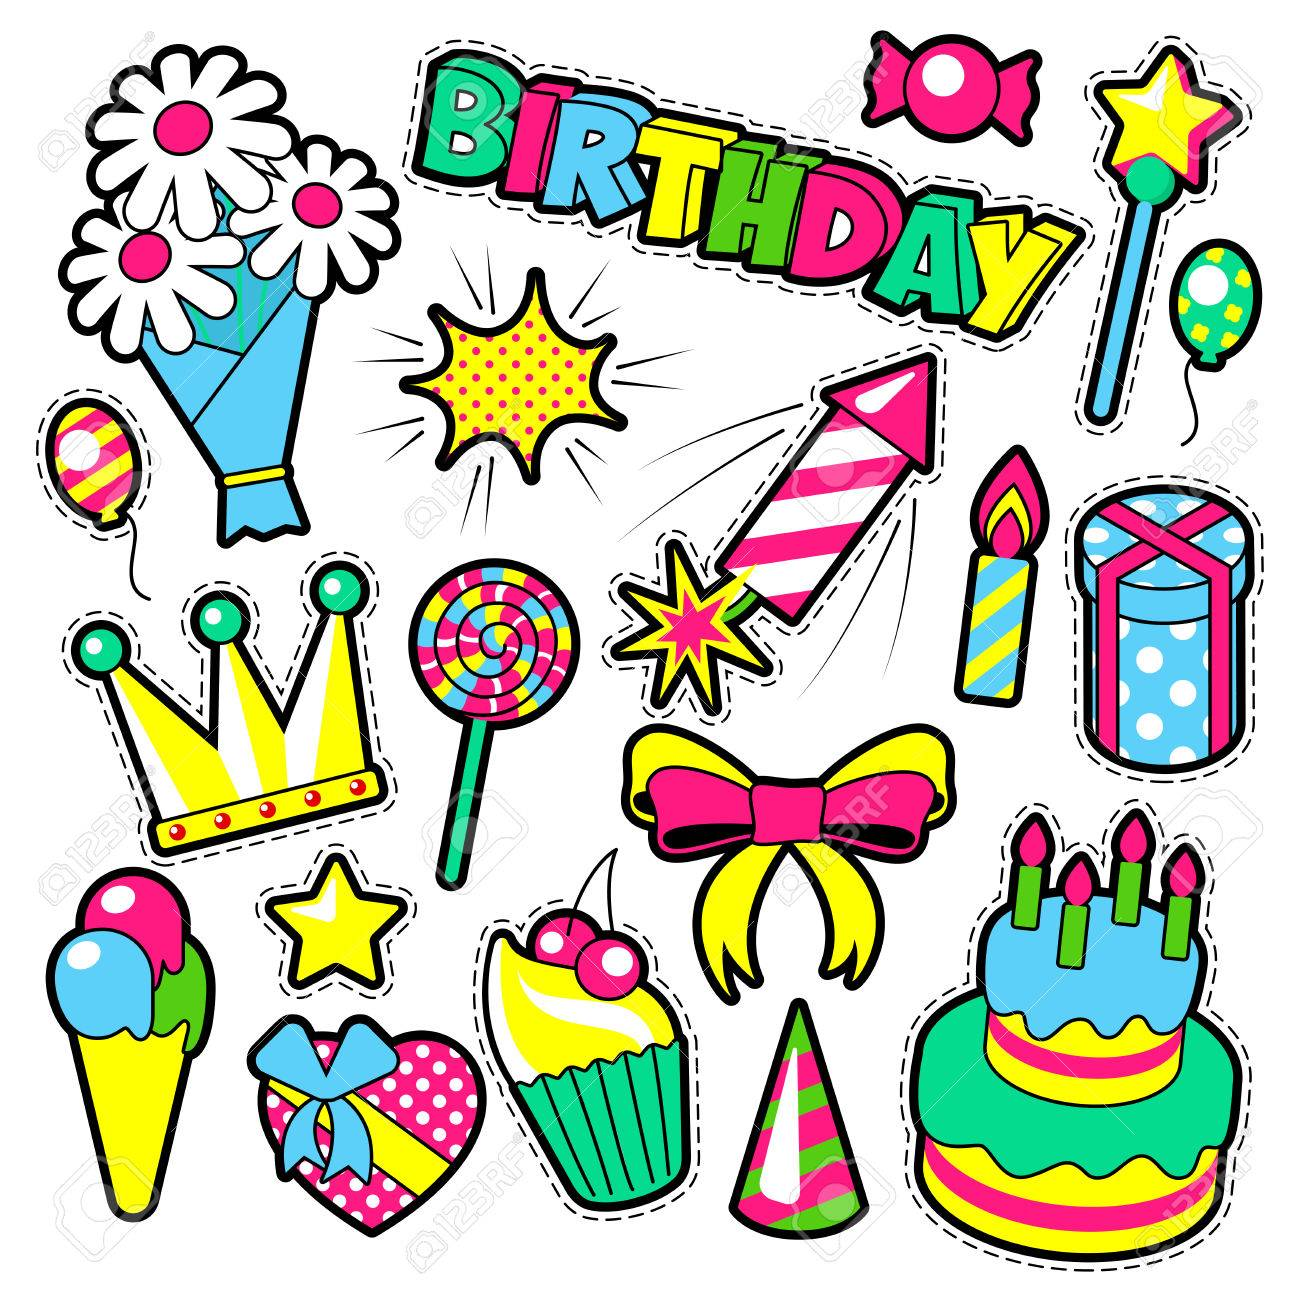 fashion badges patches stickers birthday theme happy birthday rh 123rf com Funny Happy Birthday Clip Art clip art of happy birthday fashionista